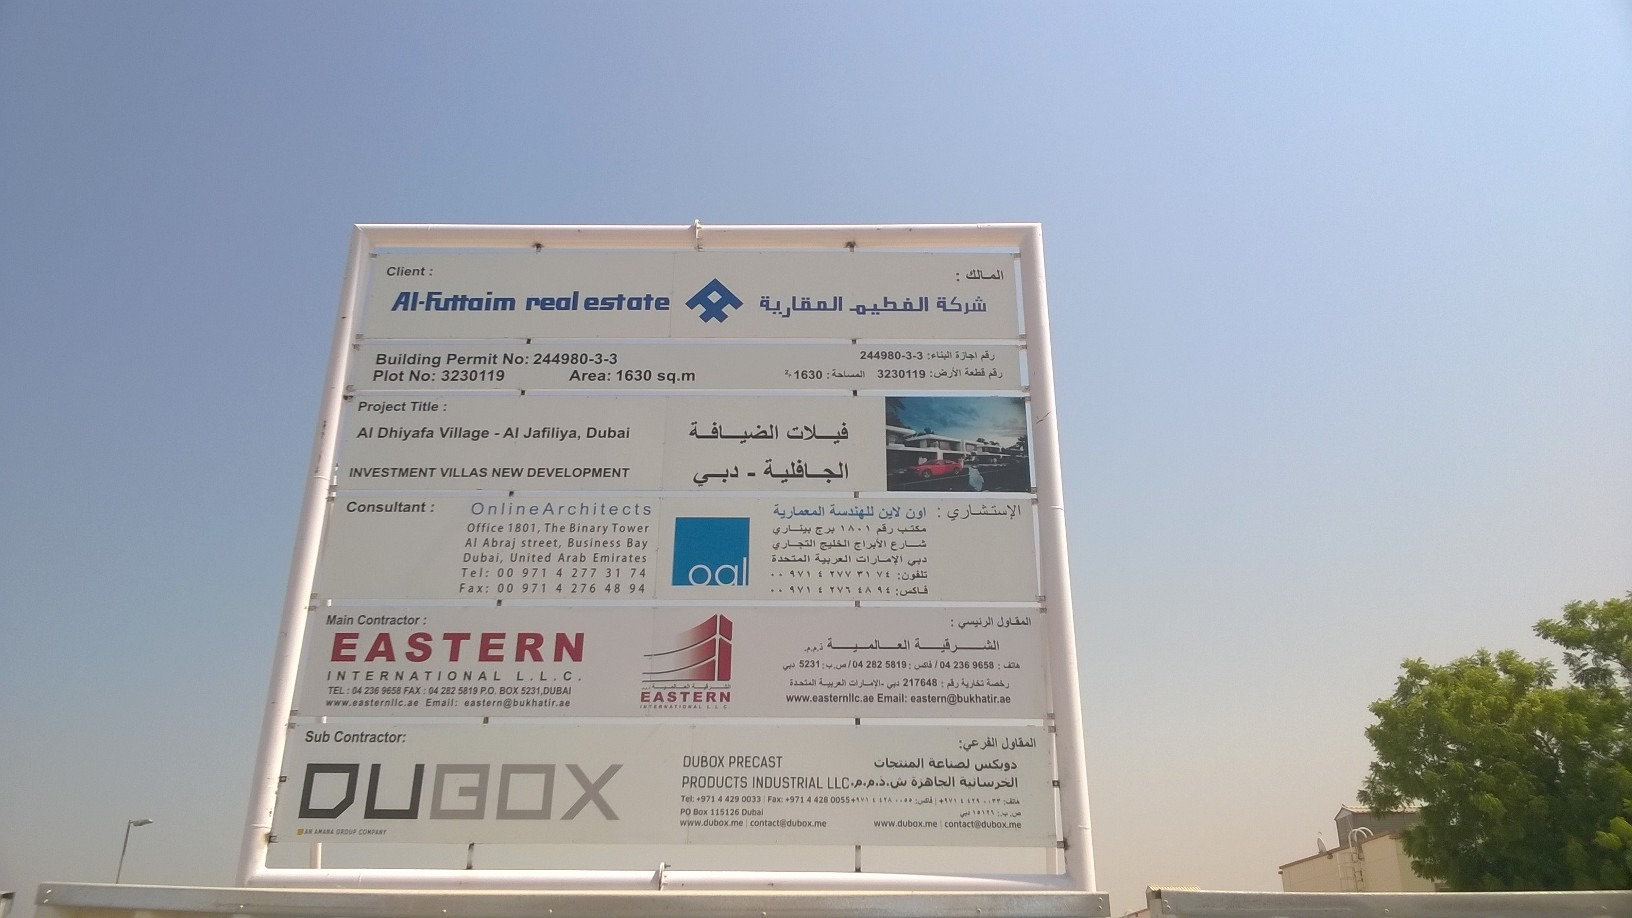 Al Dhiyafa Village - 26 Villas Construction Signboard